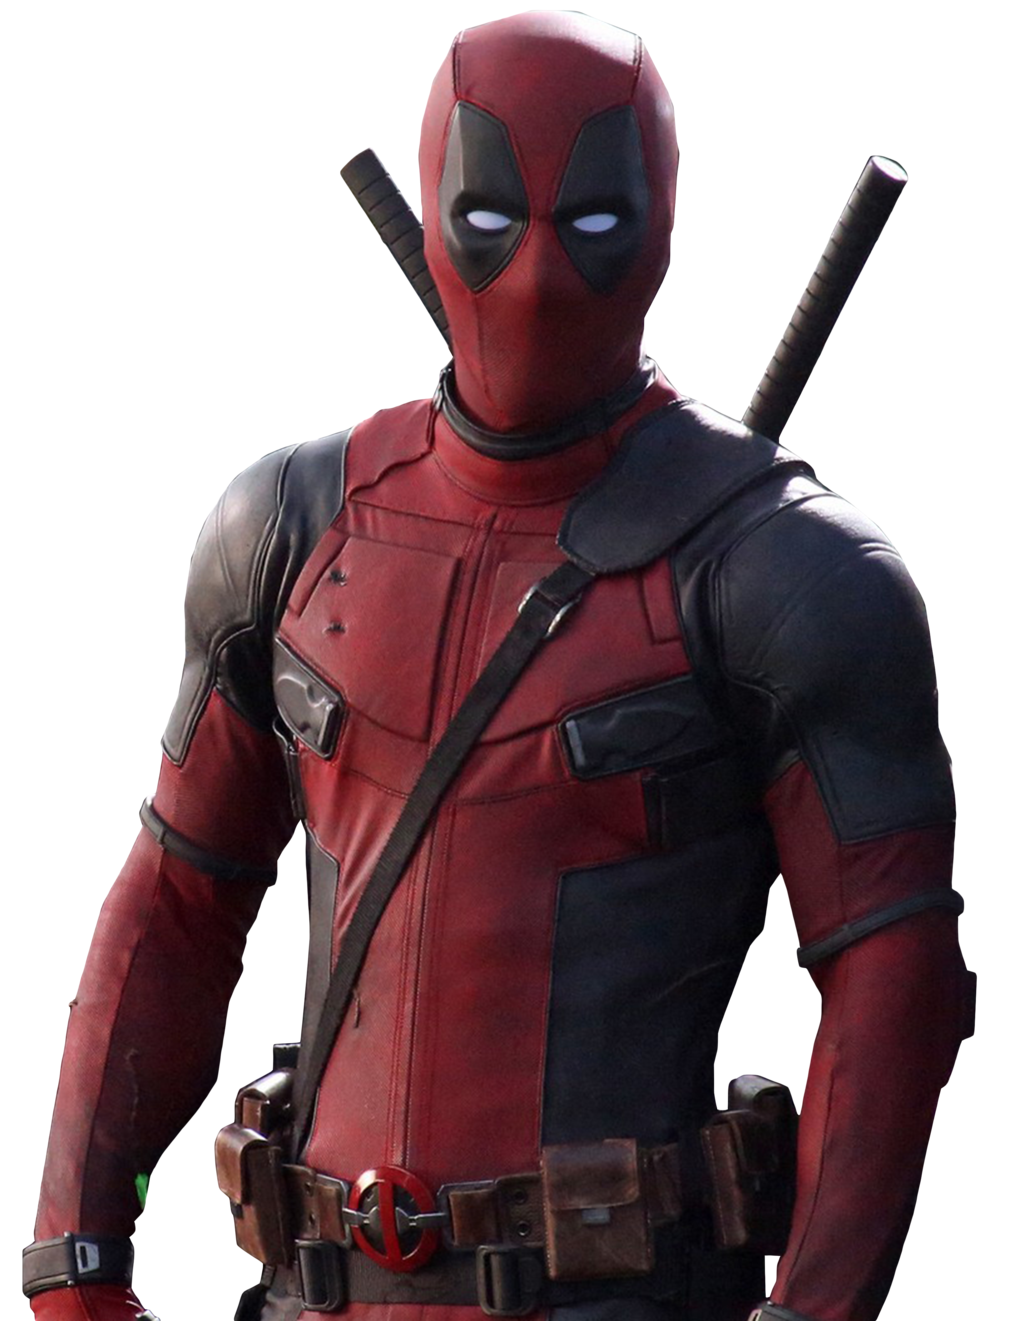 Download Deadpool Transparent Png HQ PNG Image.